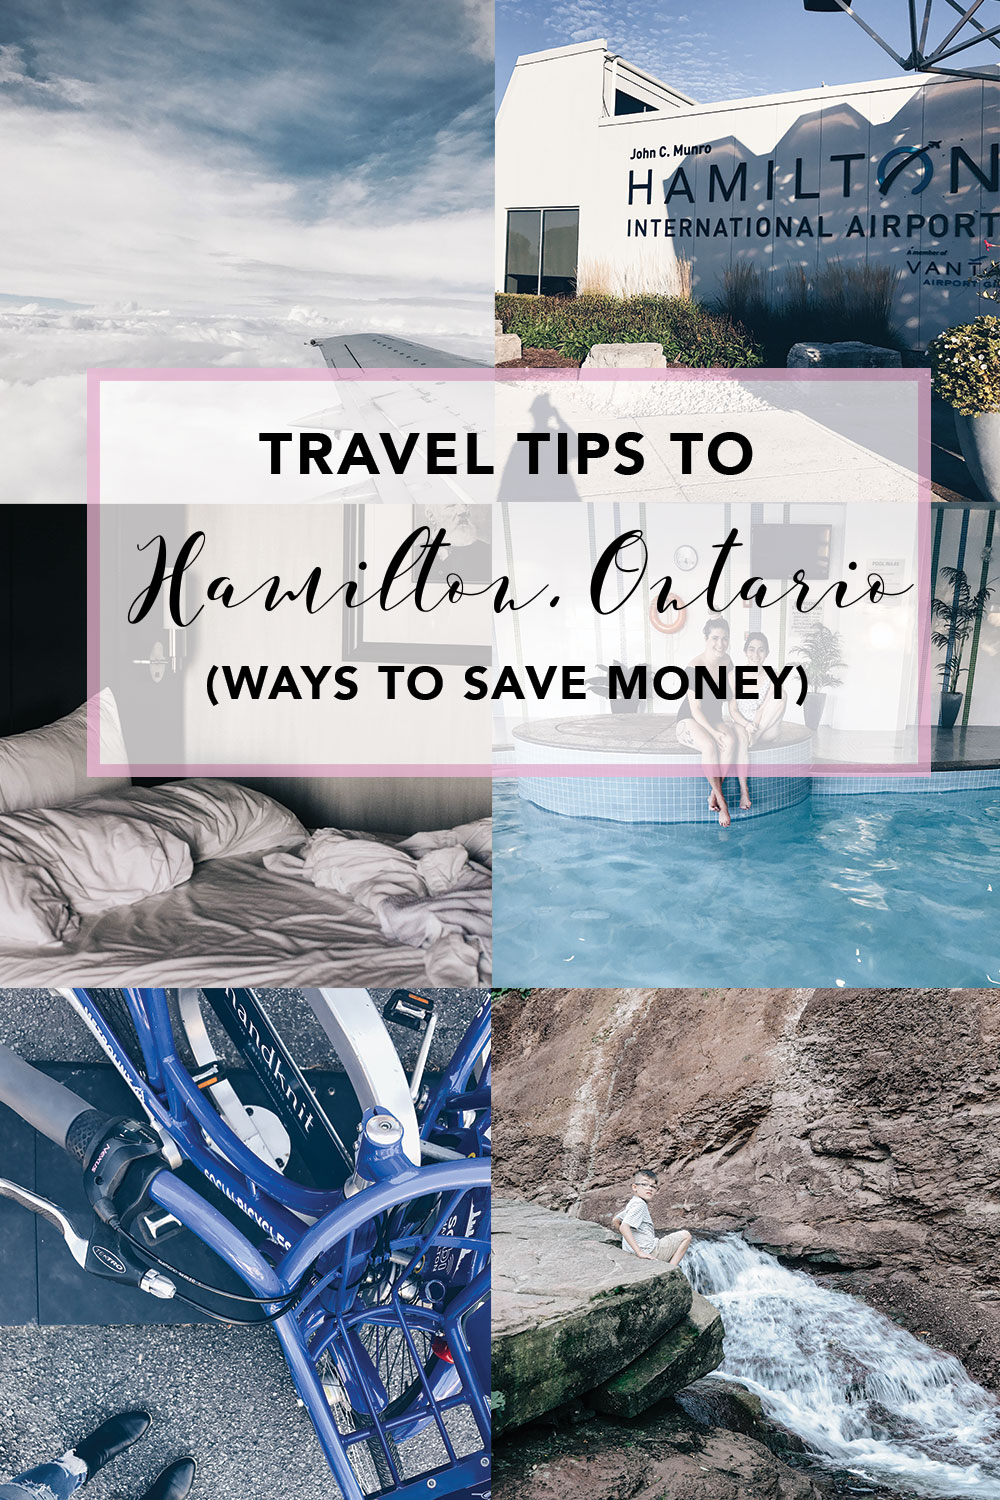 Things to Do in Hamilton Ontario On a Budget